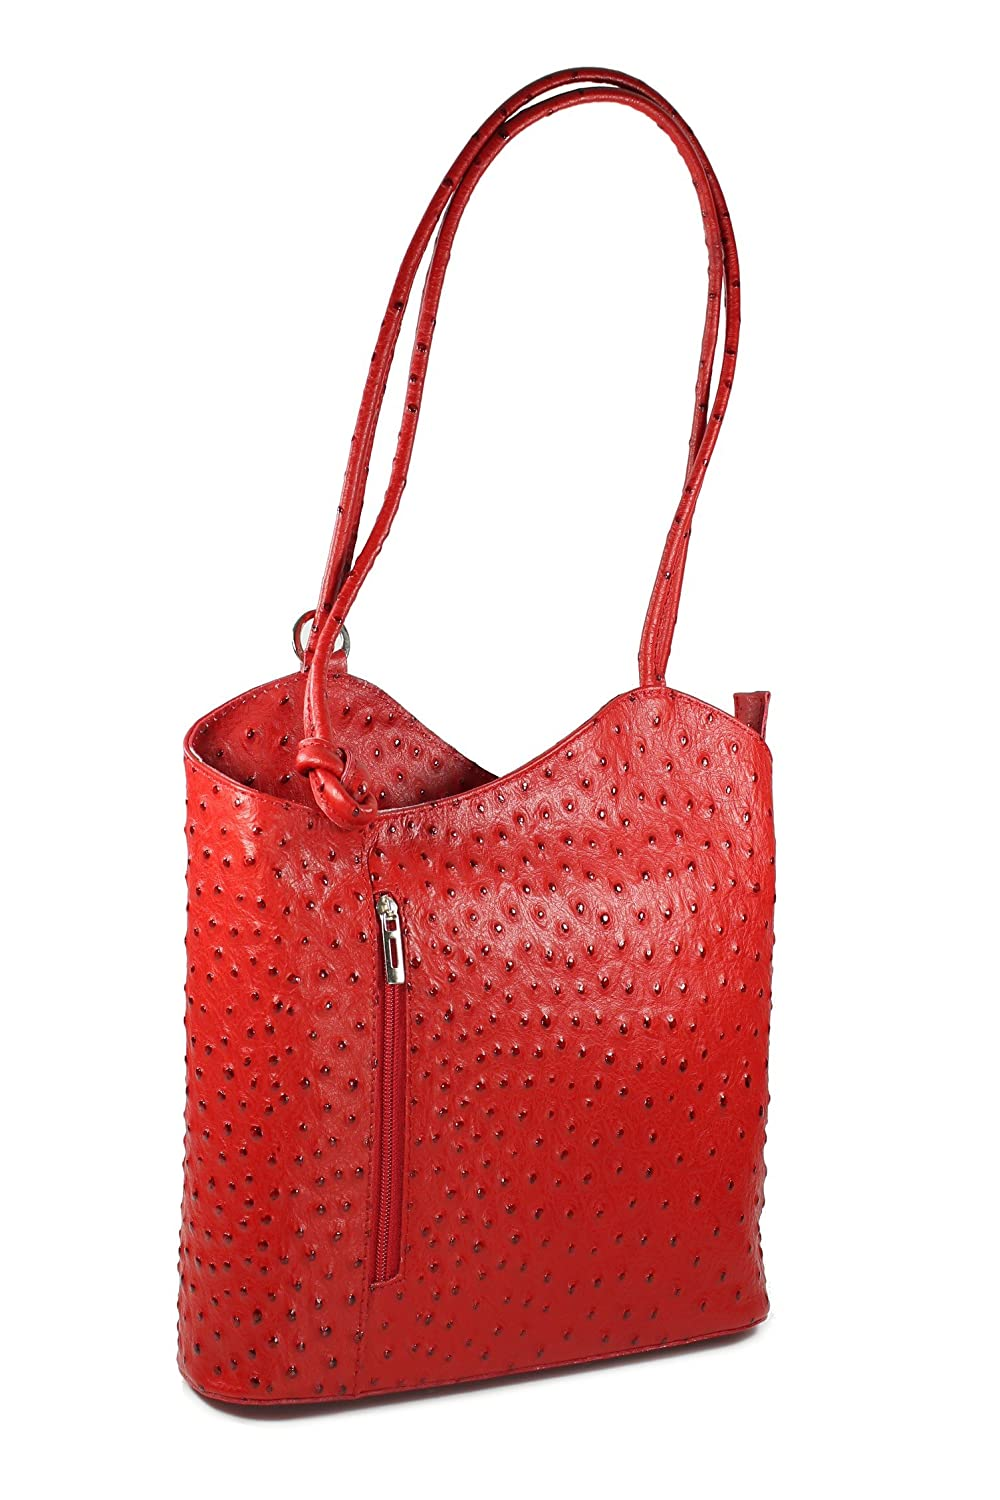 Belli? Italian Handbag Women Shoulder Bag Backpack 2in1 Genuine Leather Ostrich Embossing Red - 28x28x8 cm (W x H x D)